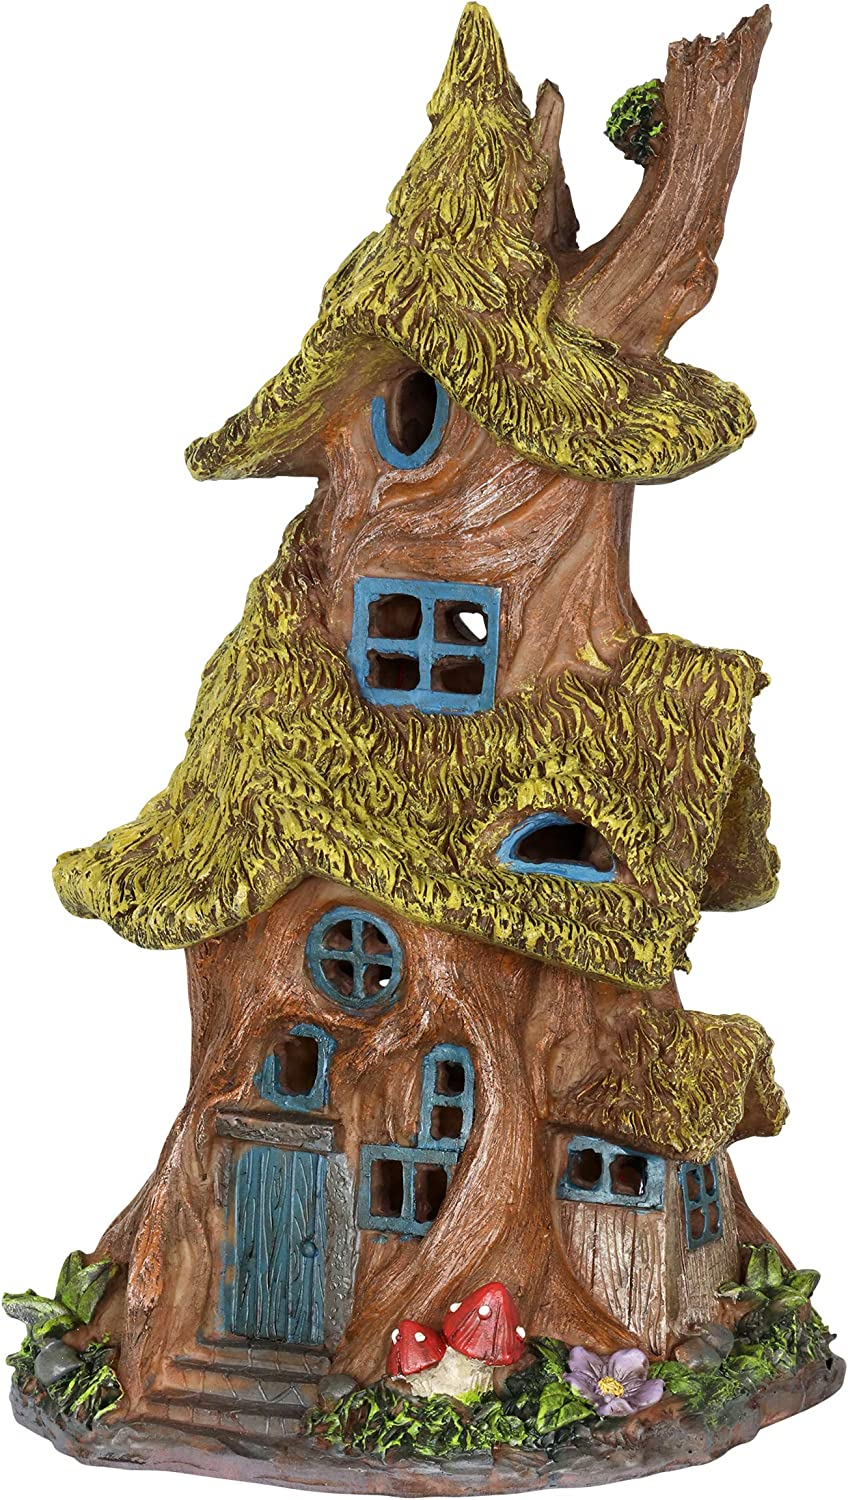 "Exhart Thatched Roof Tree House Garden Statue, Fairy Cottage, Resin, Solar Powered, 7"" L x 7"" W x 13"" H"